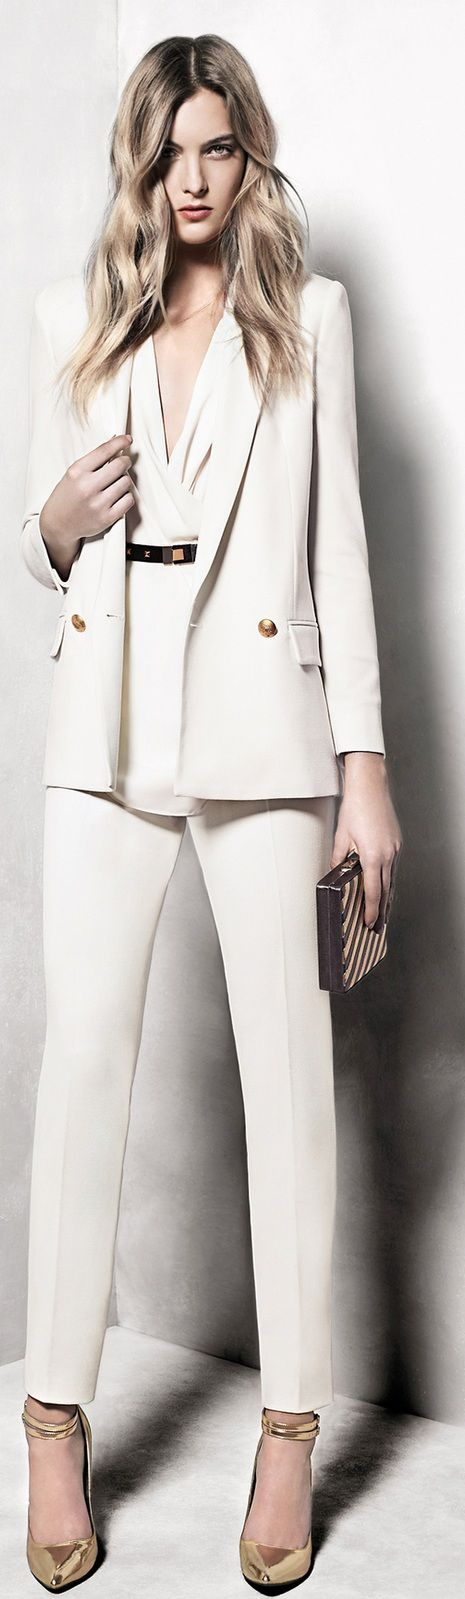 If I ever become a millionaire I will have all white suits like this. So gorgeous.                                                                                                                                                                                 Más